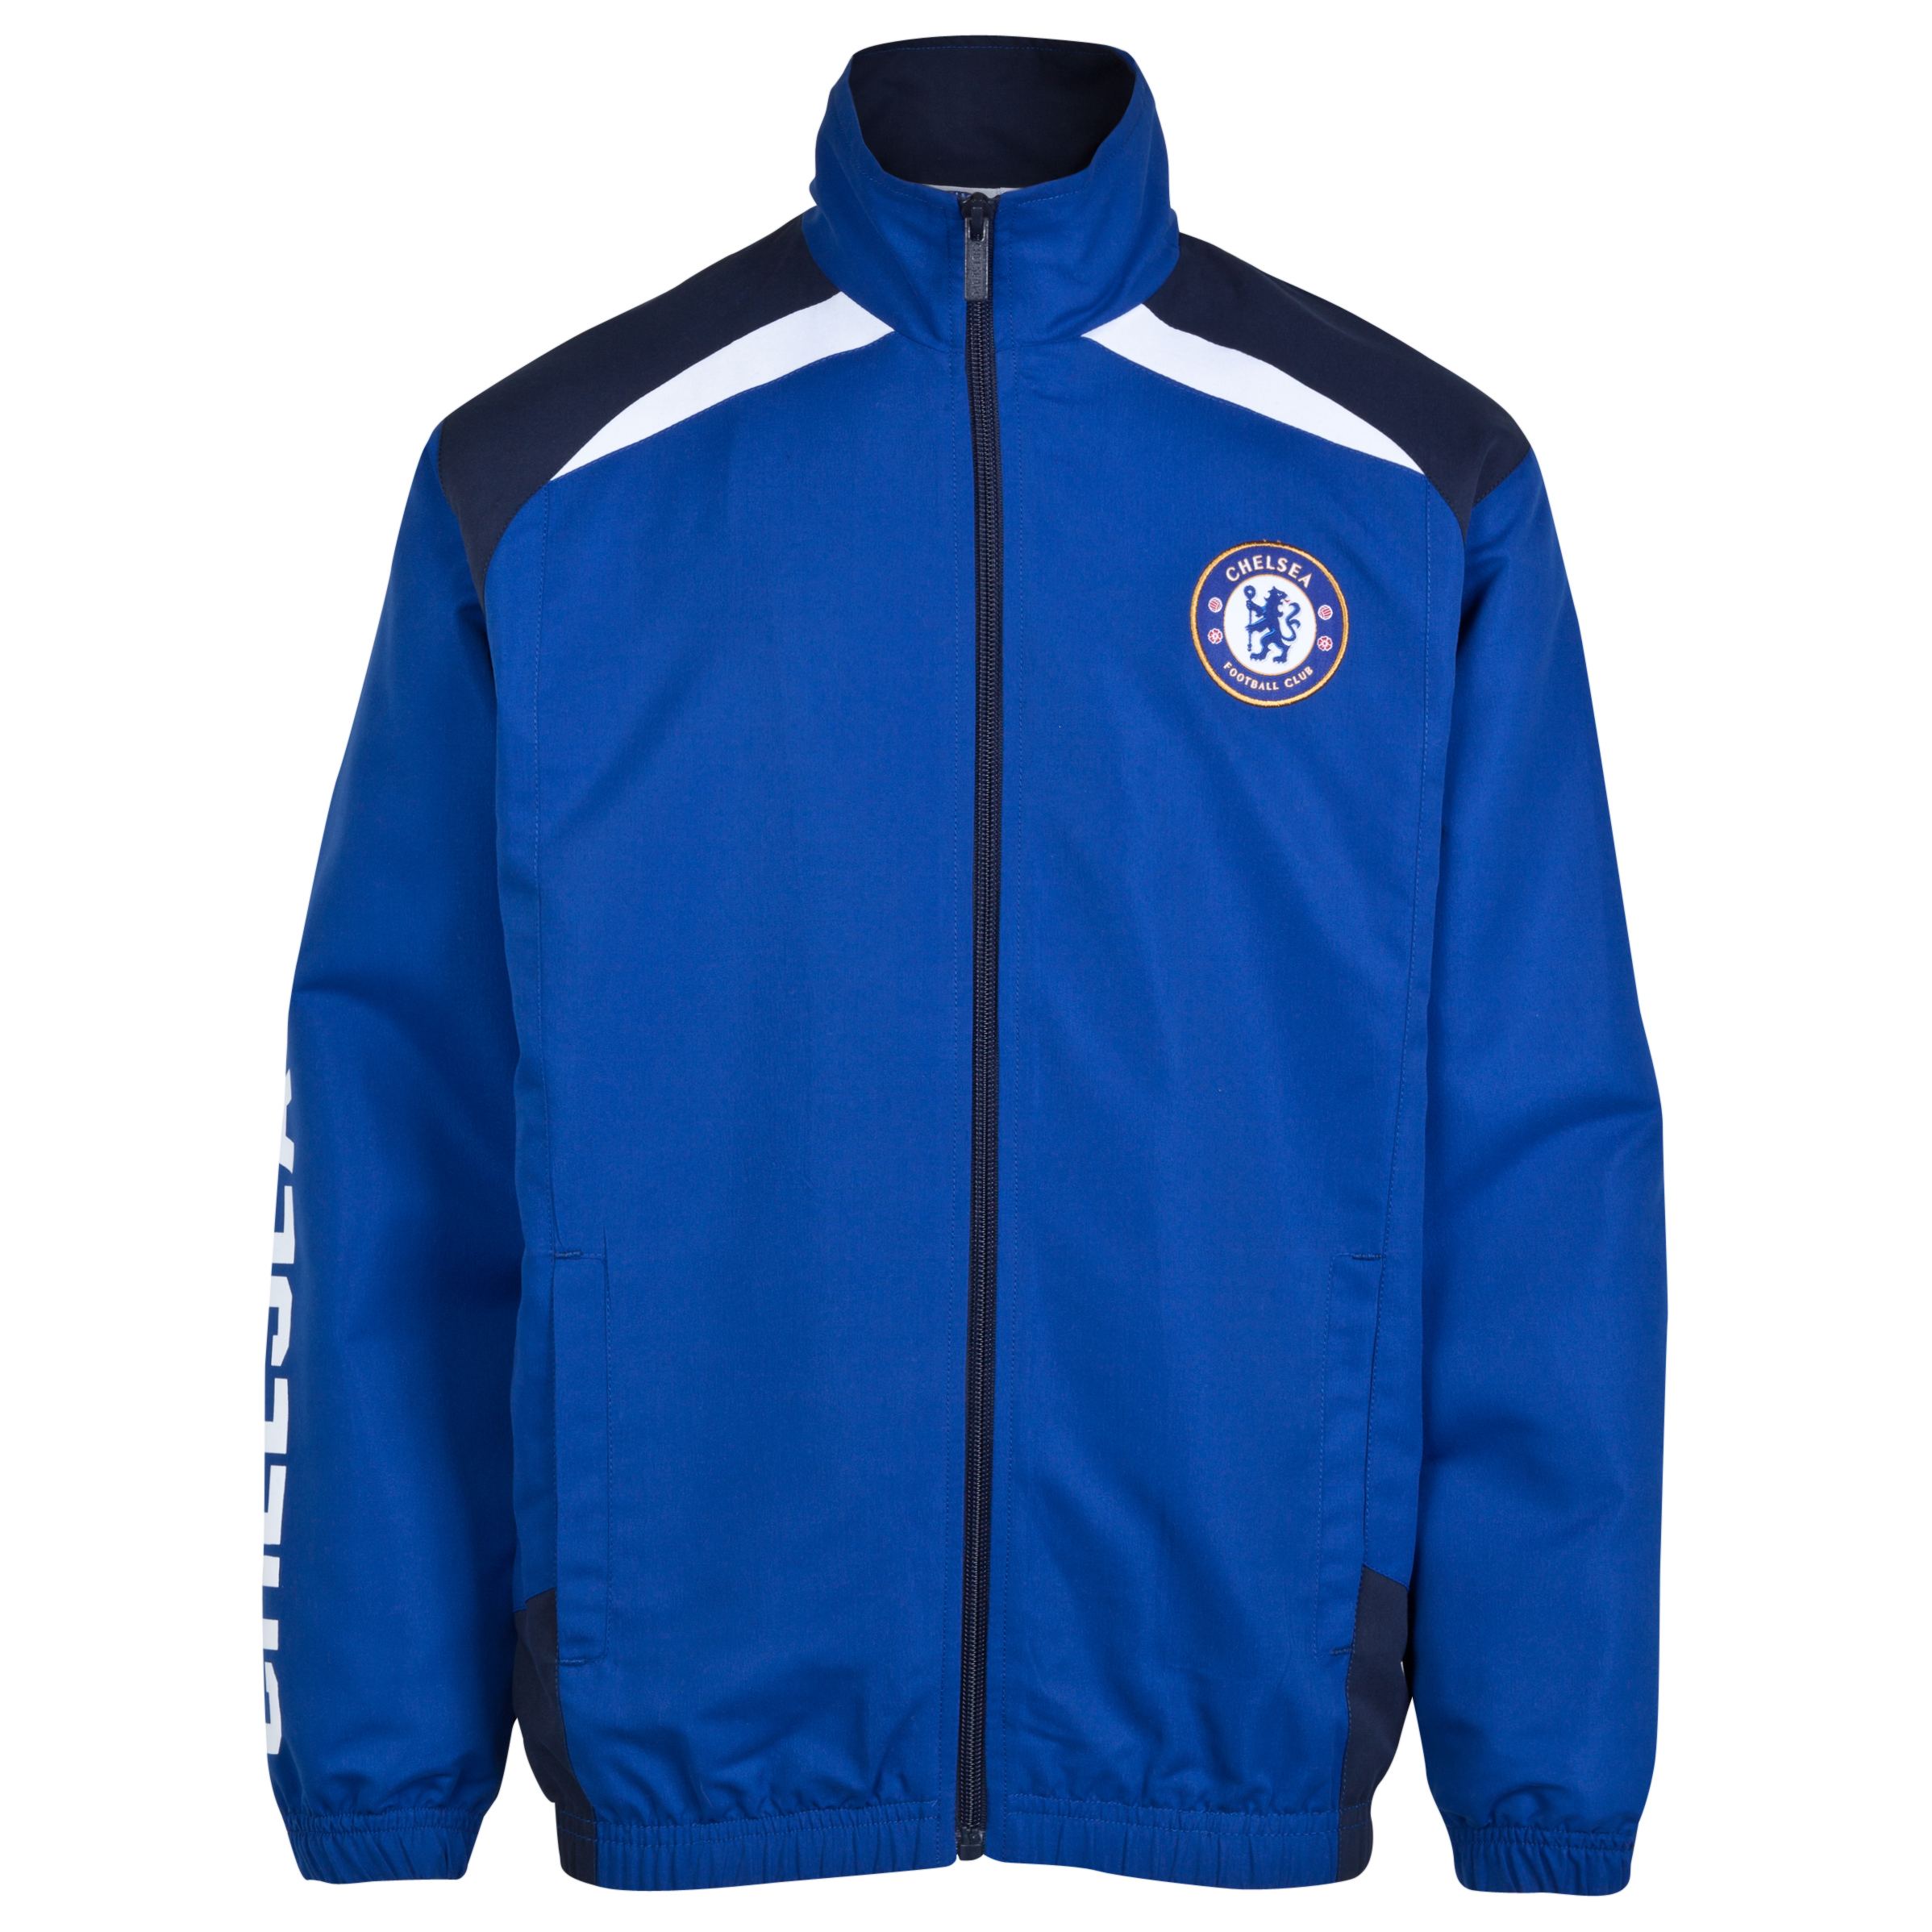 Chelsea Basic Woven Leisure Jacket - Older Boys Blue